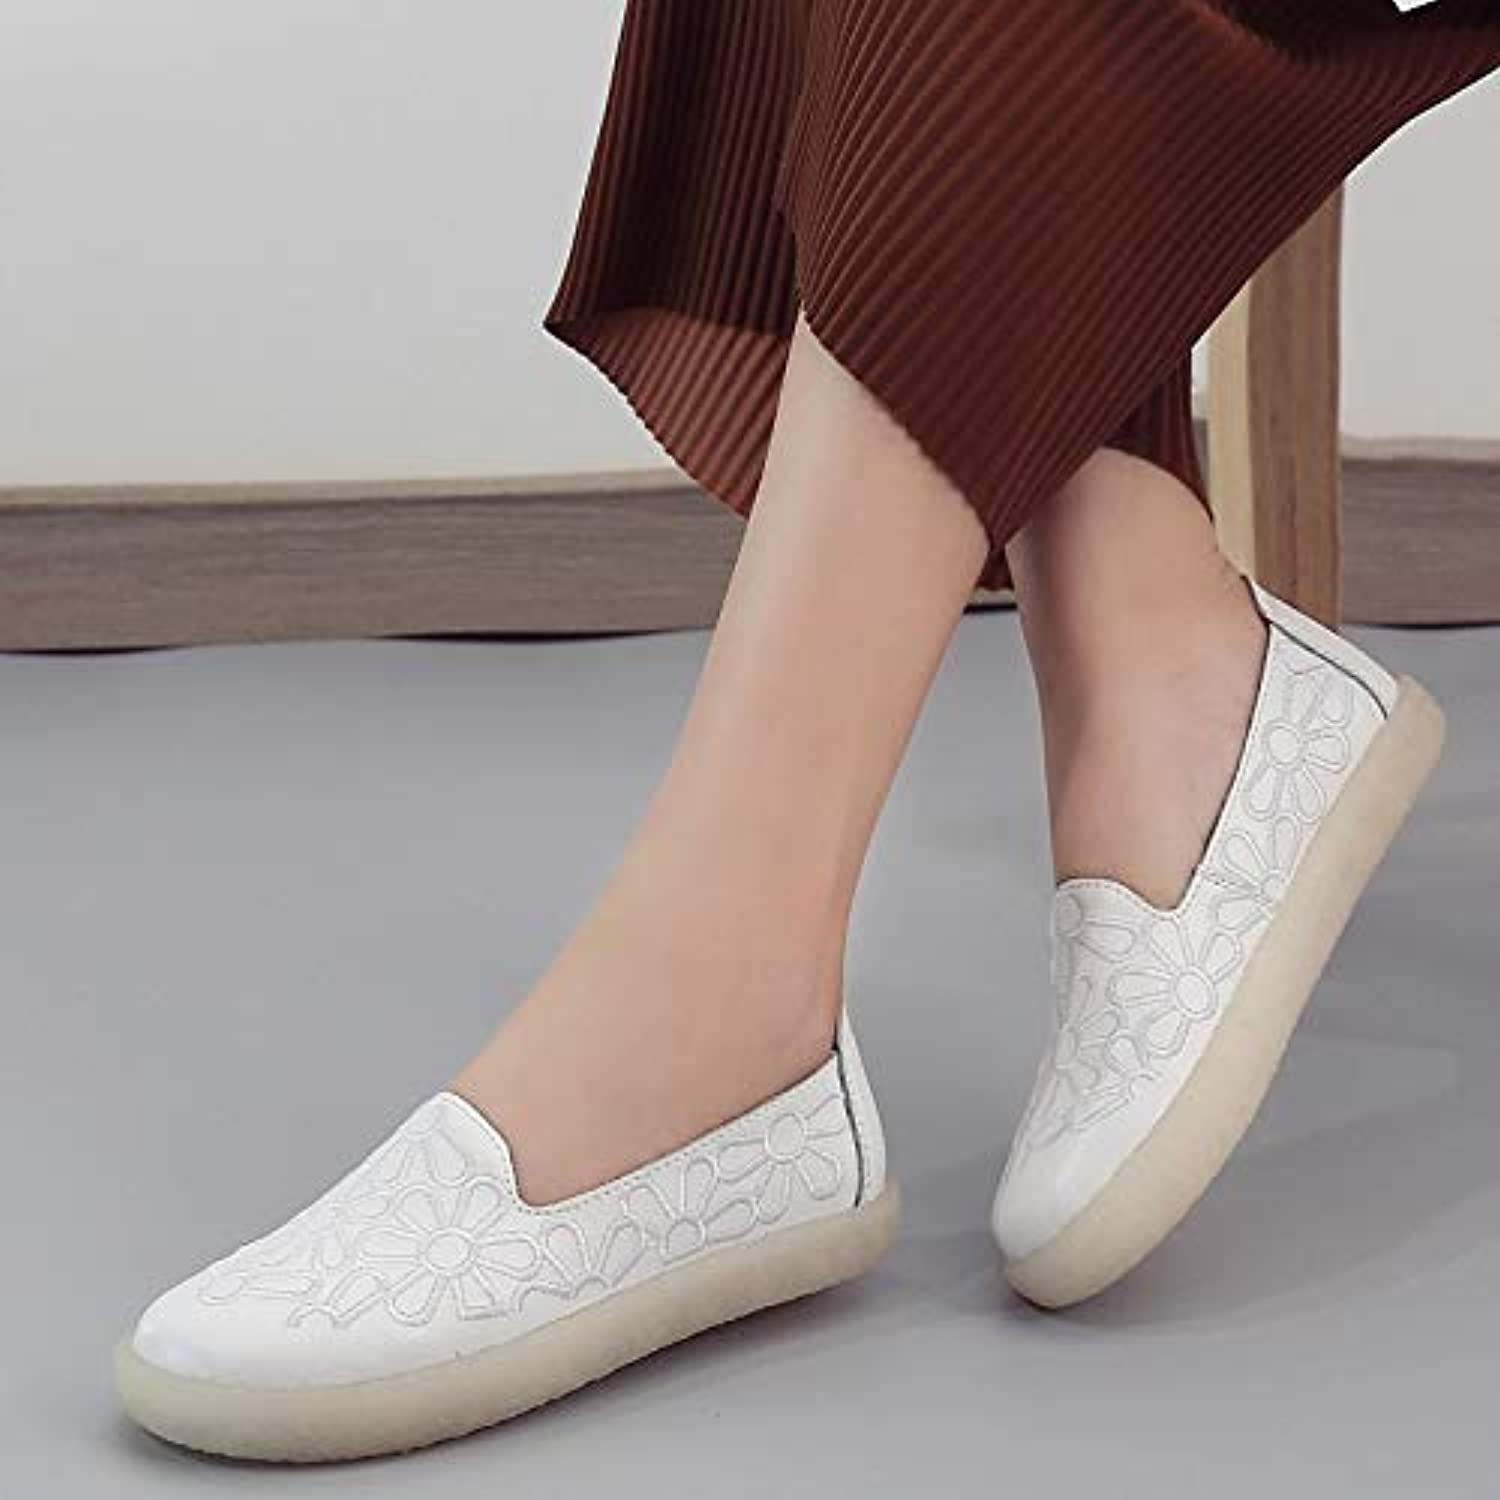 GzPuluz Fashion Sneakers Embroidered Breathable Wearable Wild Casual shoes for Women